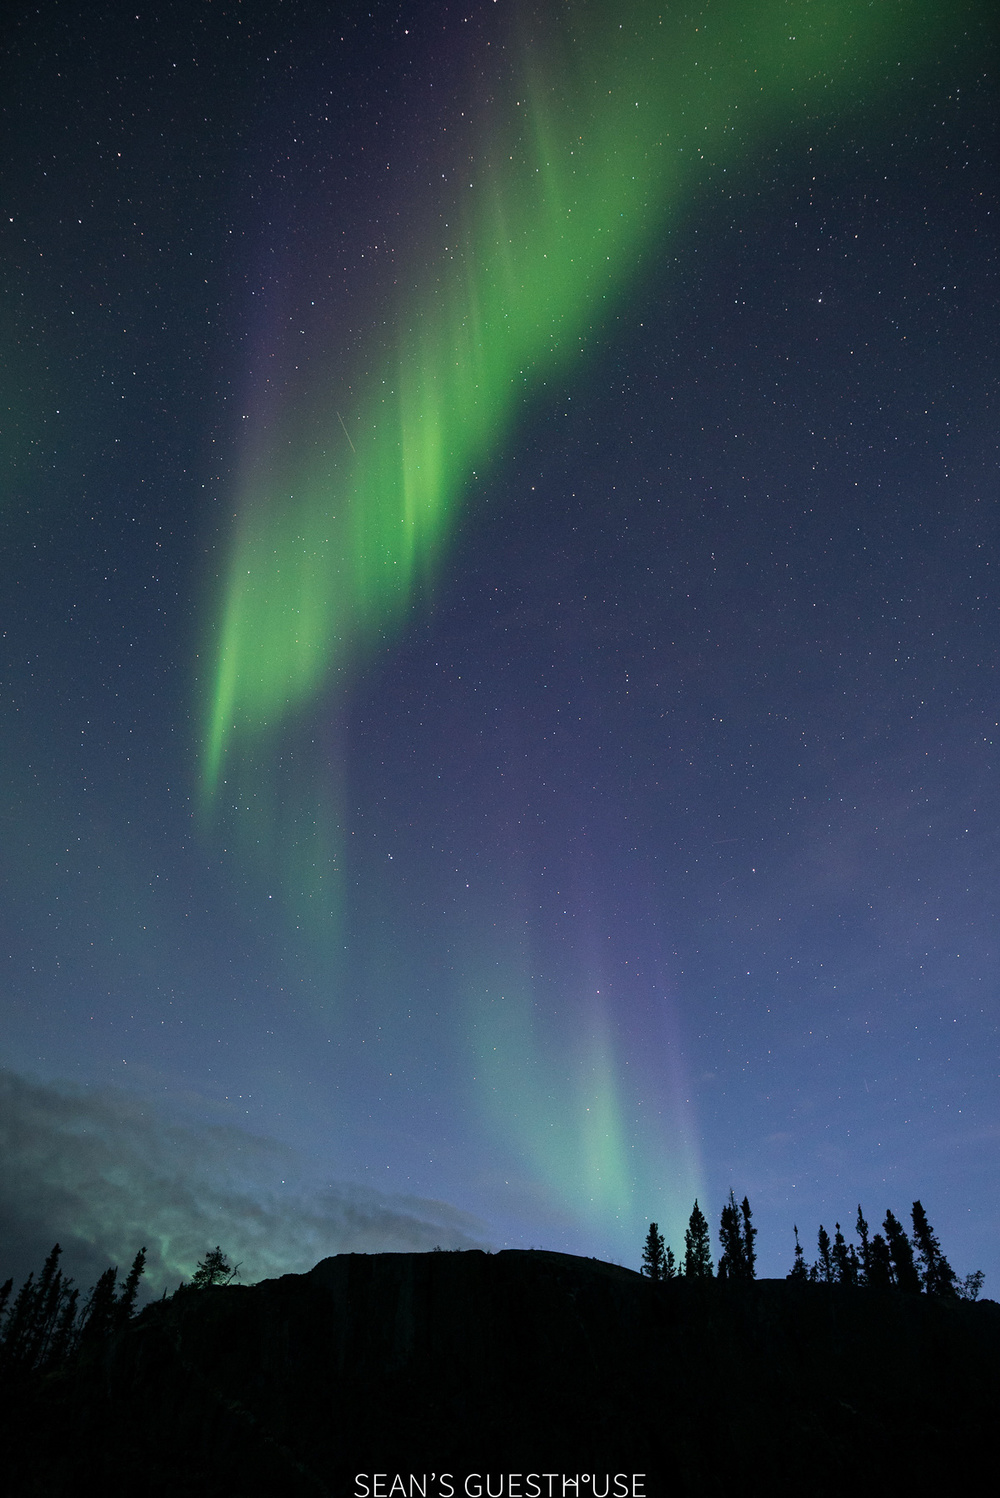 Sean's Guesthouse - Autumn Northern Lights Tour Yellowknife - 4.jpg